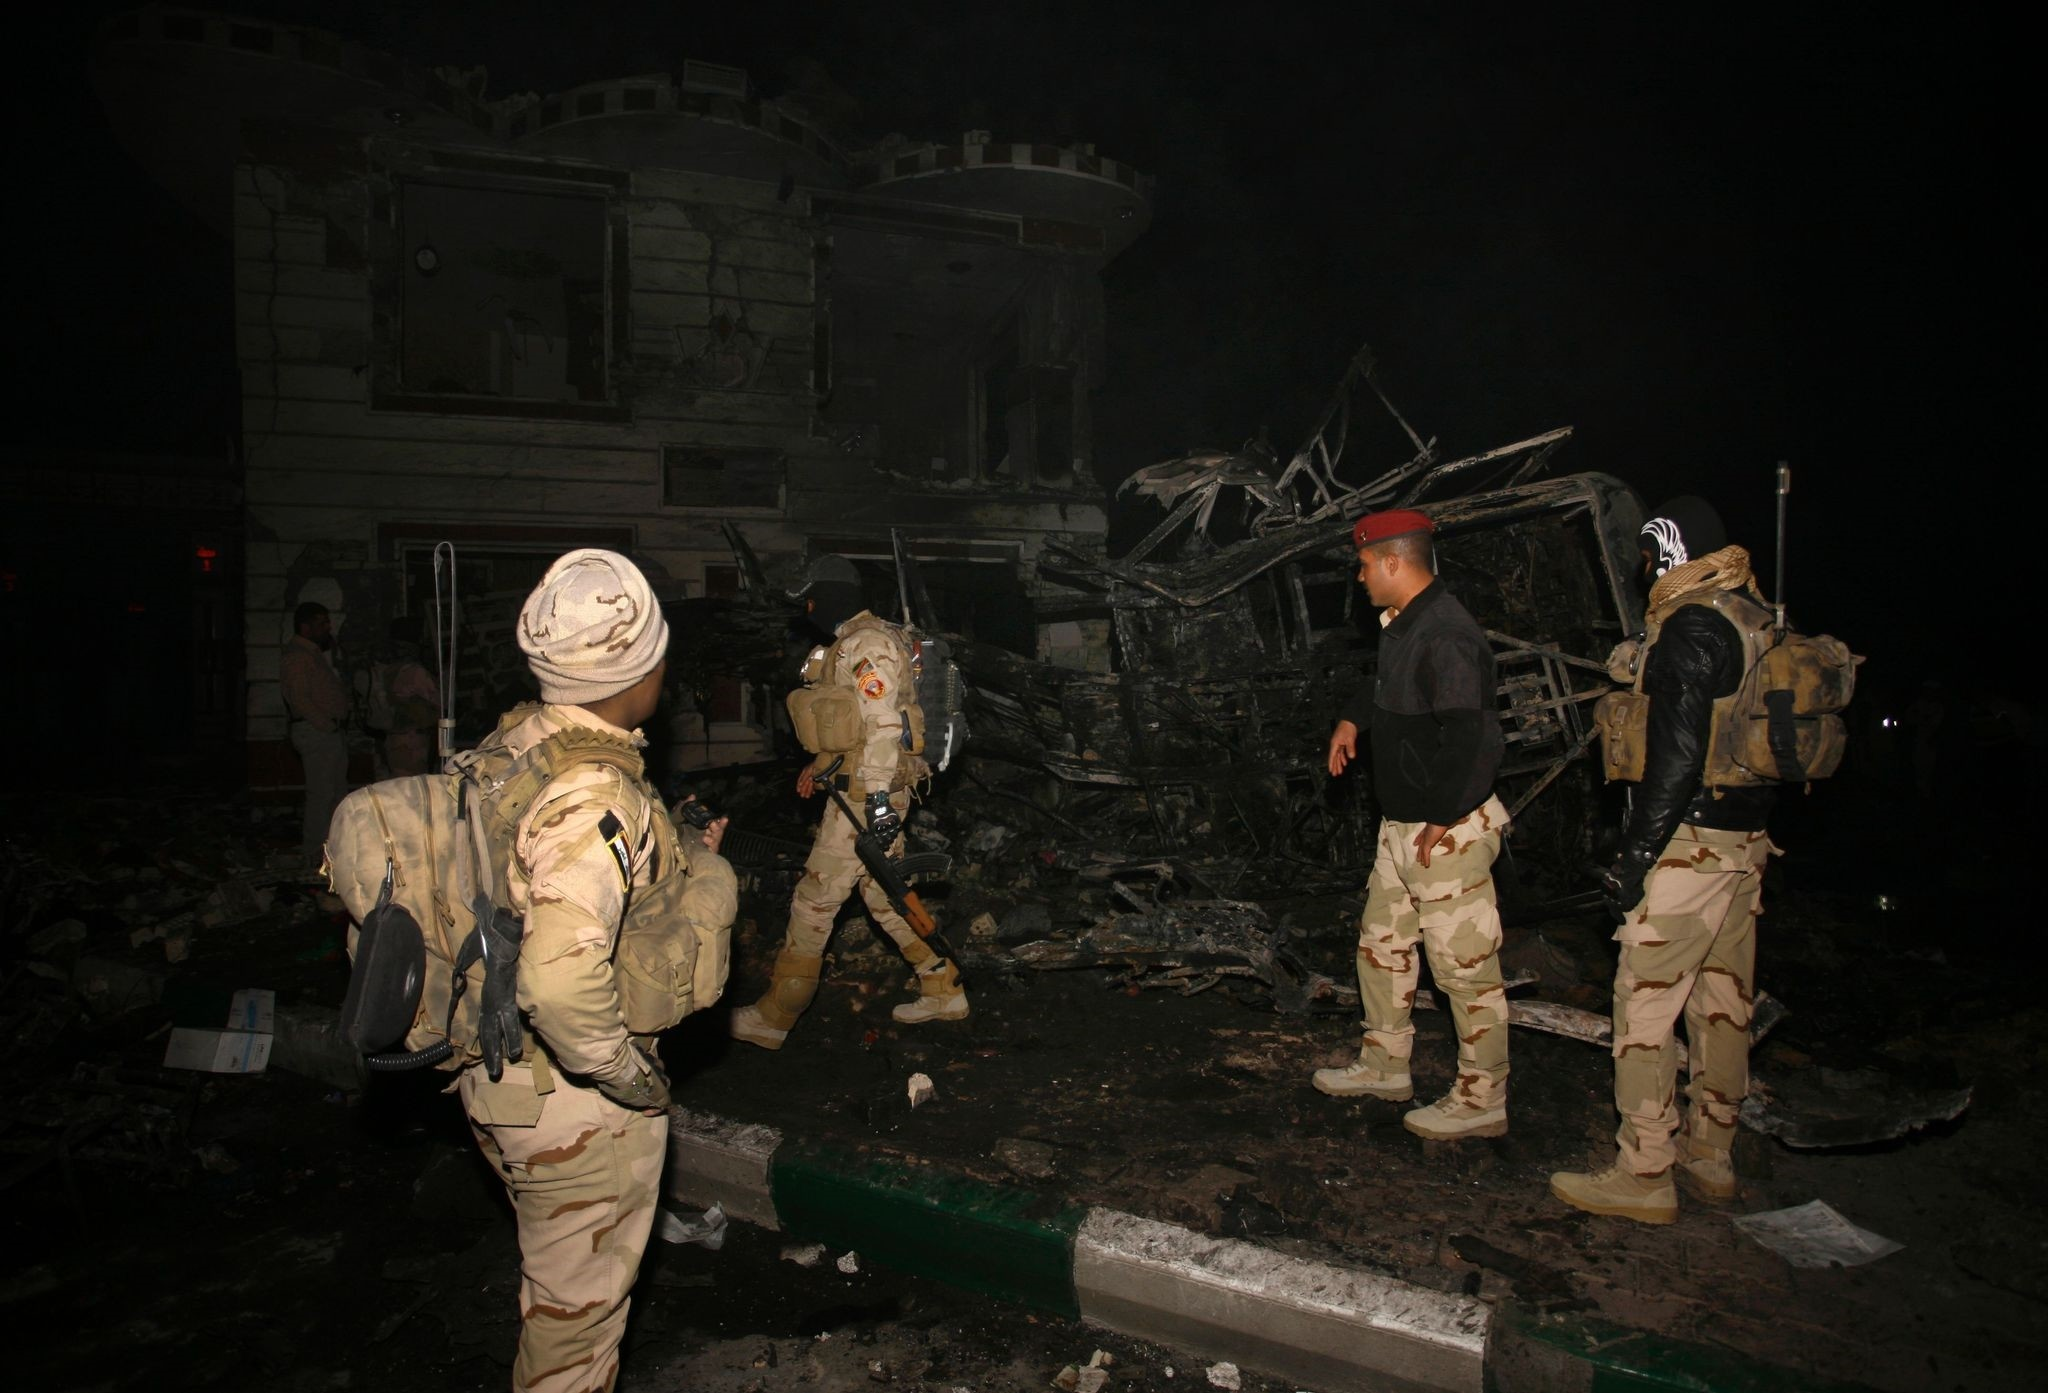 Iraqi security forces inspect the scene of a suicide bombing that targeted Shiite pilgrims returning from the Arbaeen commemoration in Karbala, on November 24, 2016. (AFP Photo)